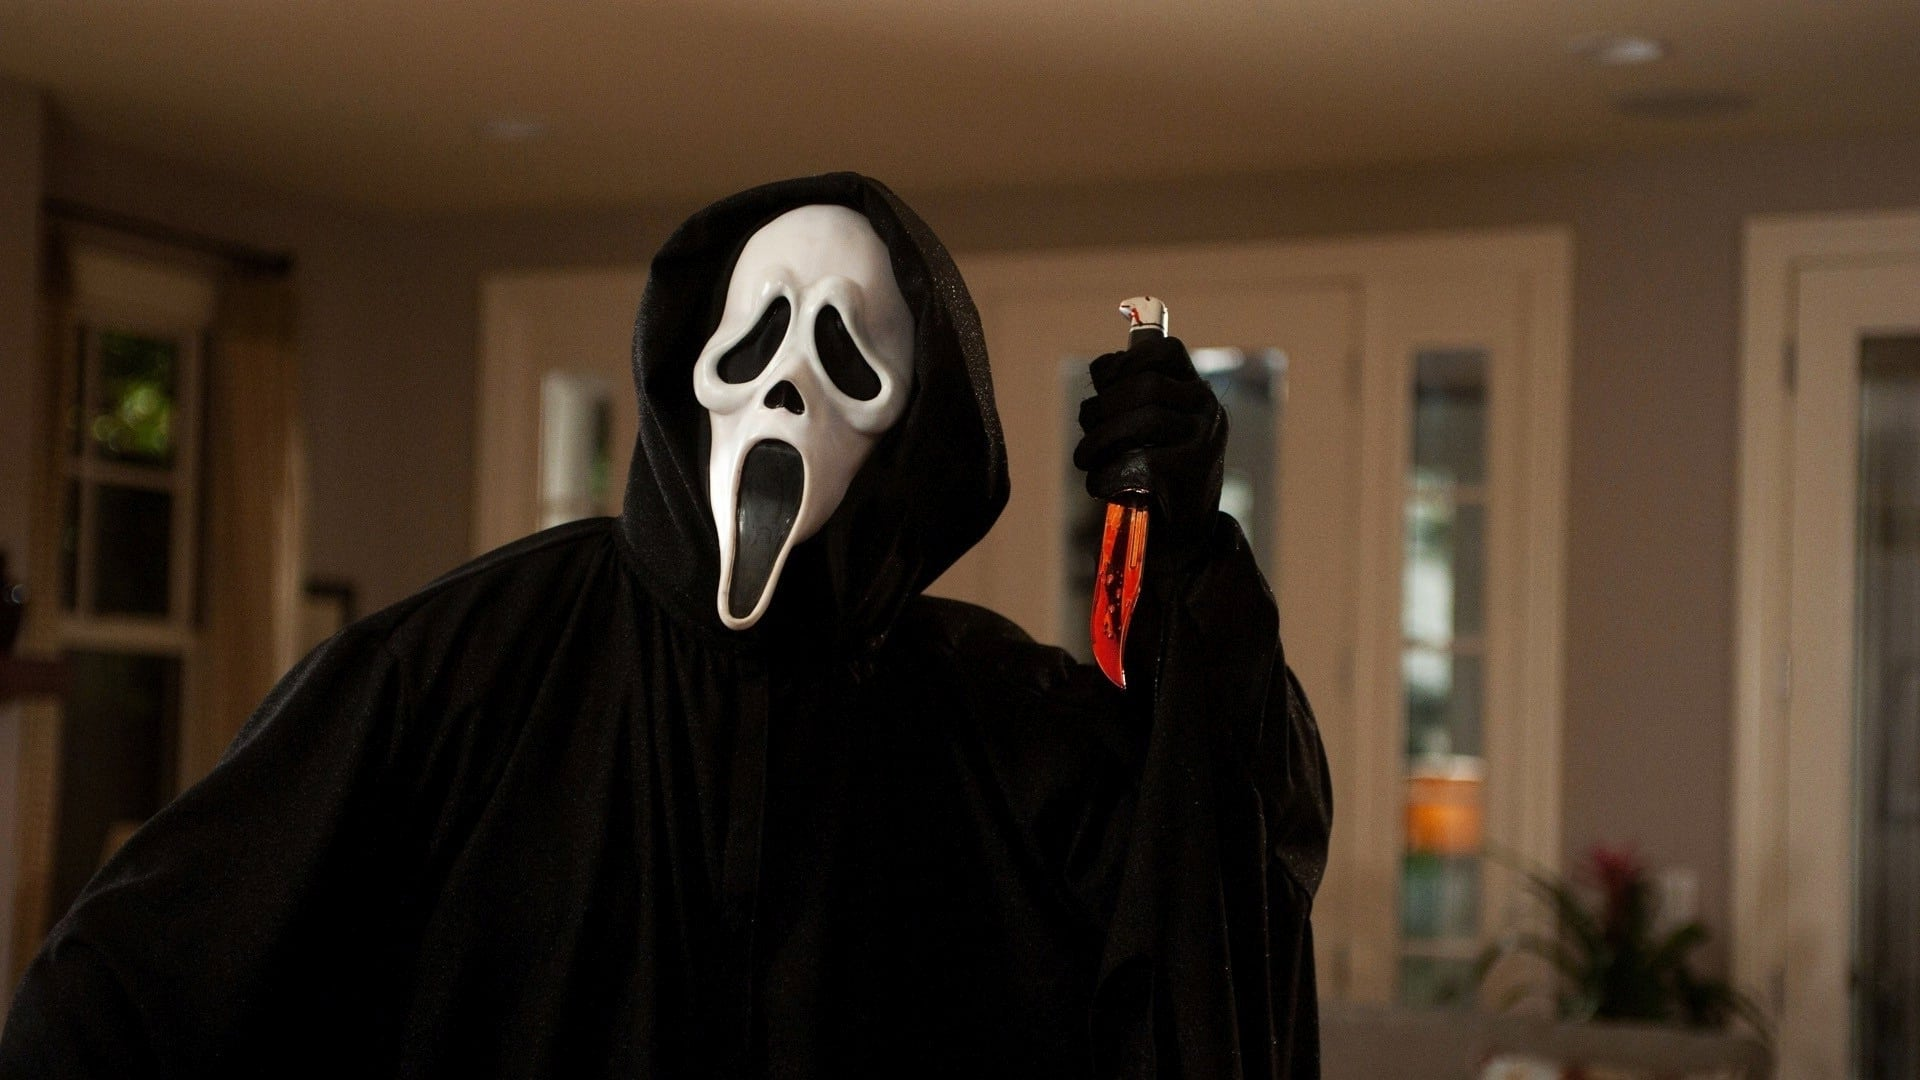 Scream (1996) - killer mask and bloodly knife